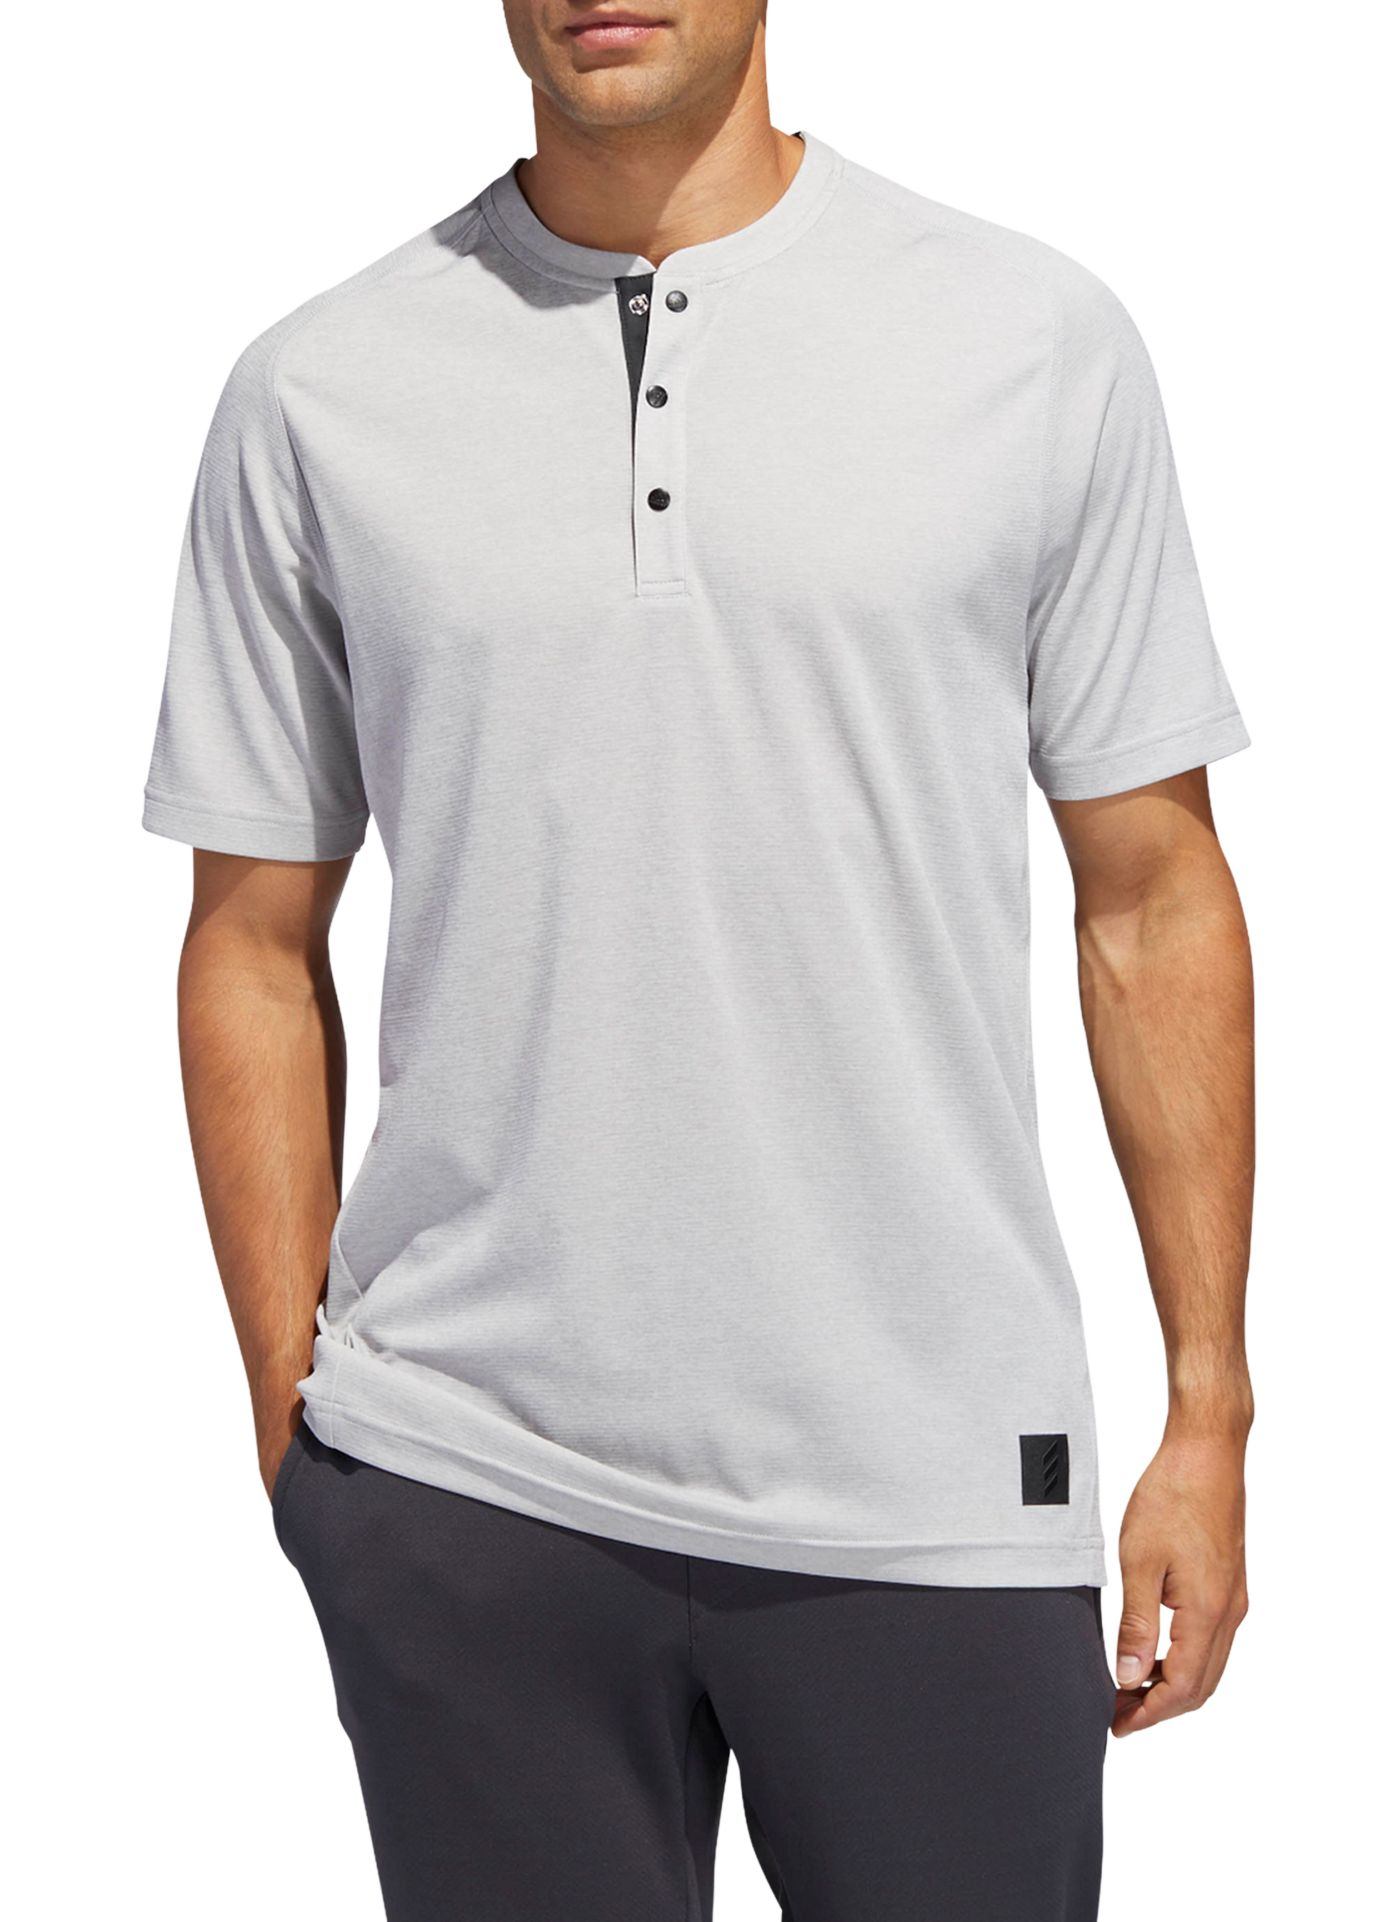 adidas Men's Adicross Transition Henley Golf Shirt